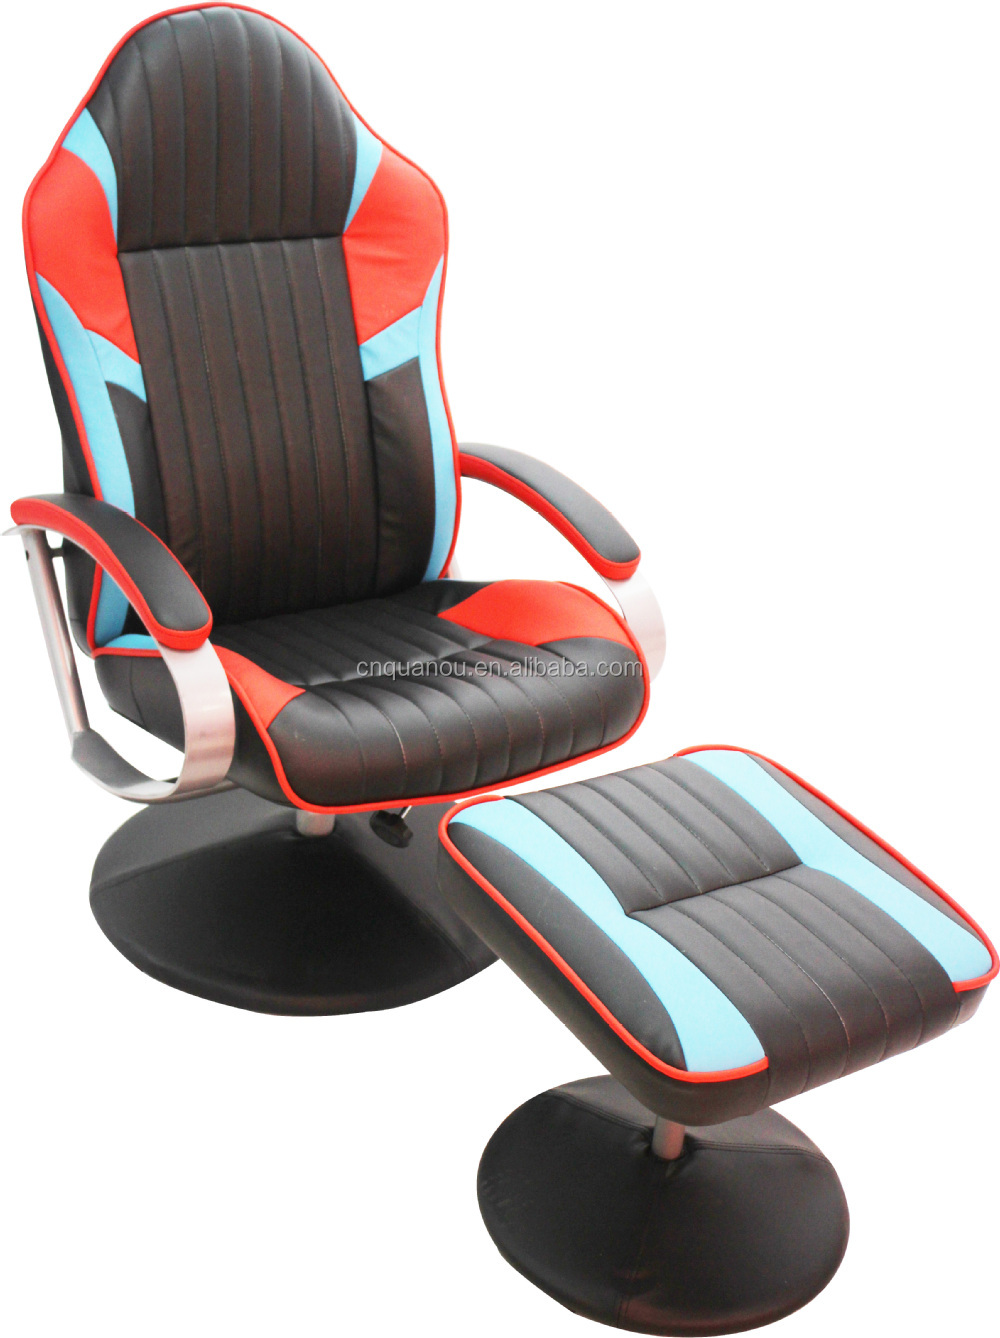 recliner gaming chair dining table covers design workwell racing with ottoman office car